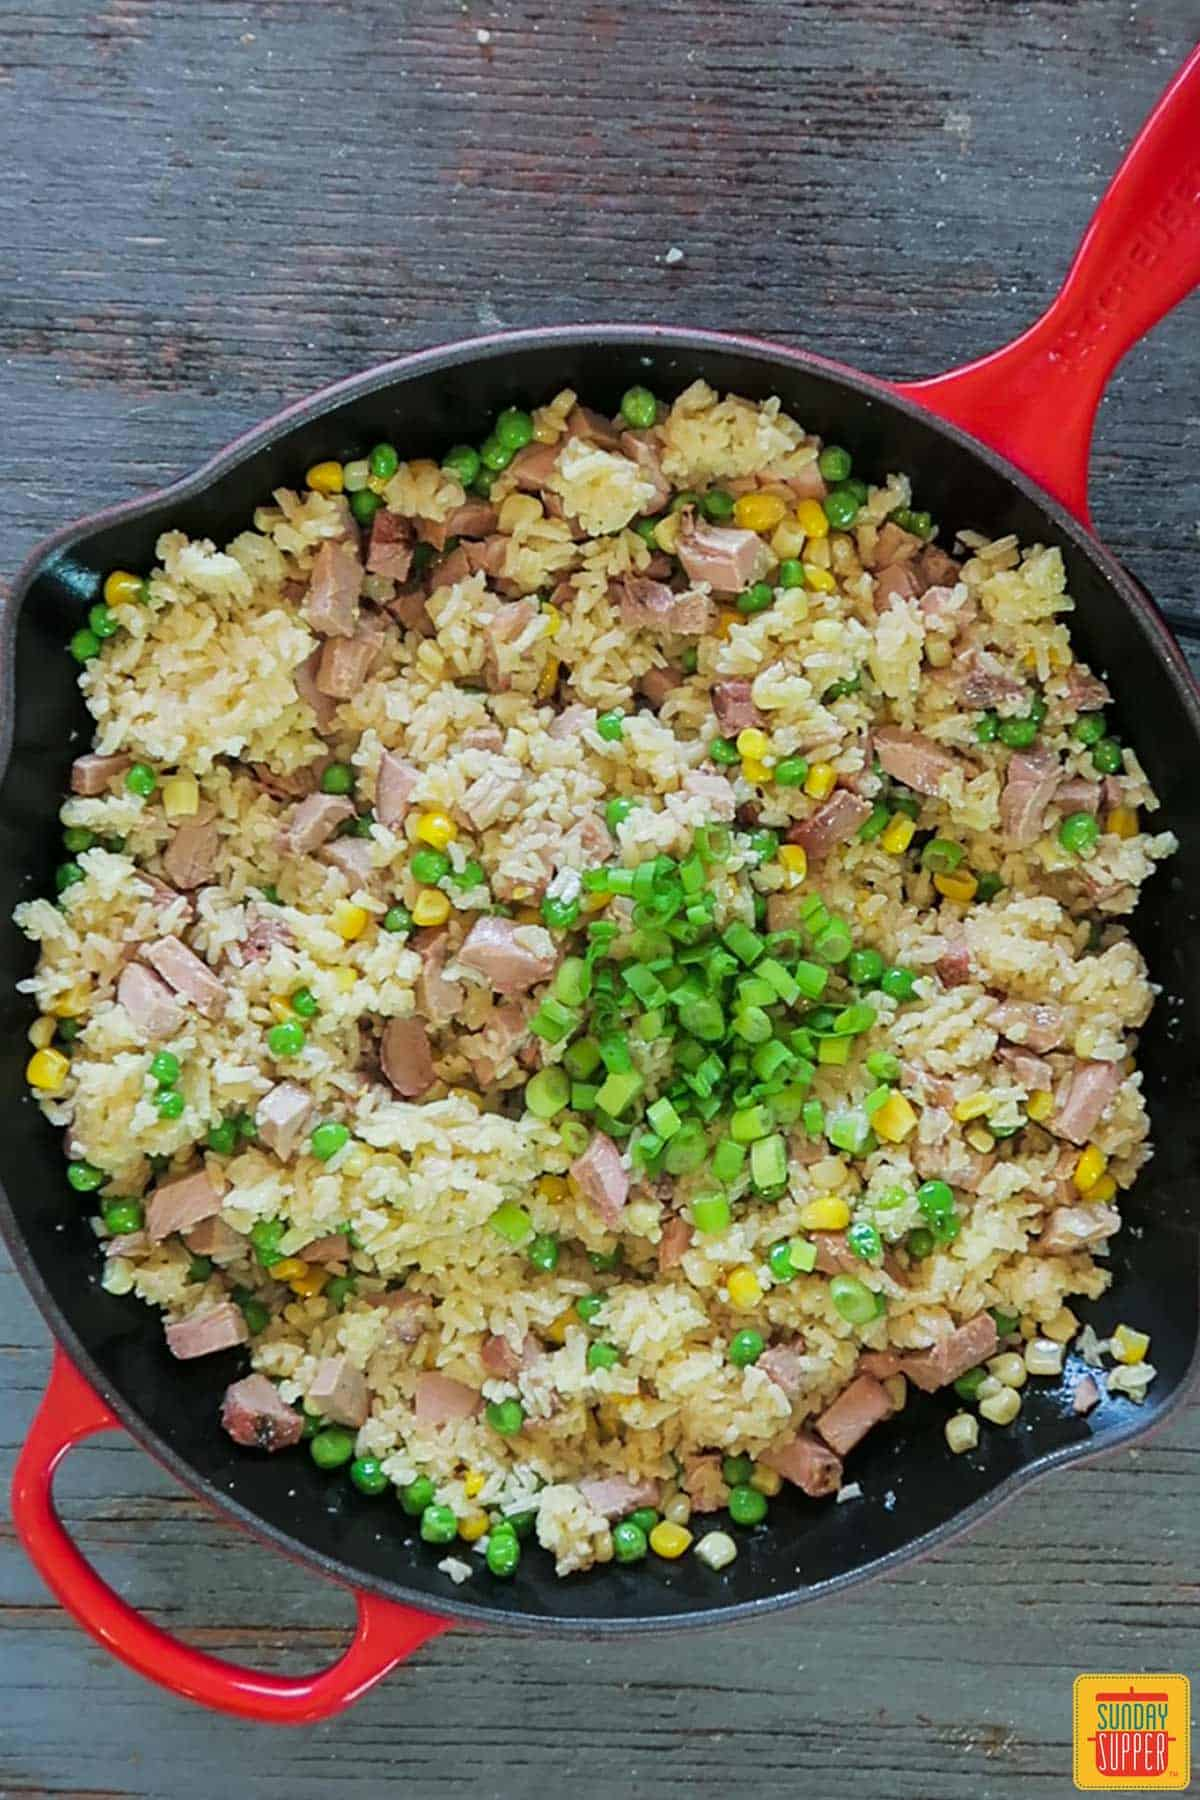 Adding green onions to fried rice